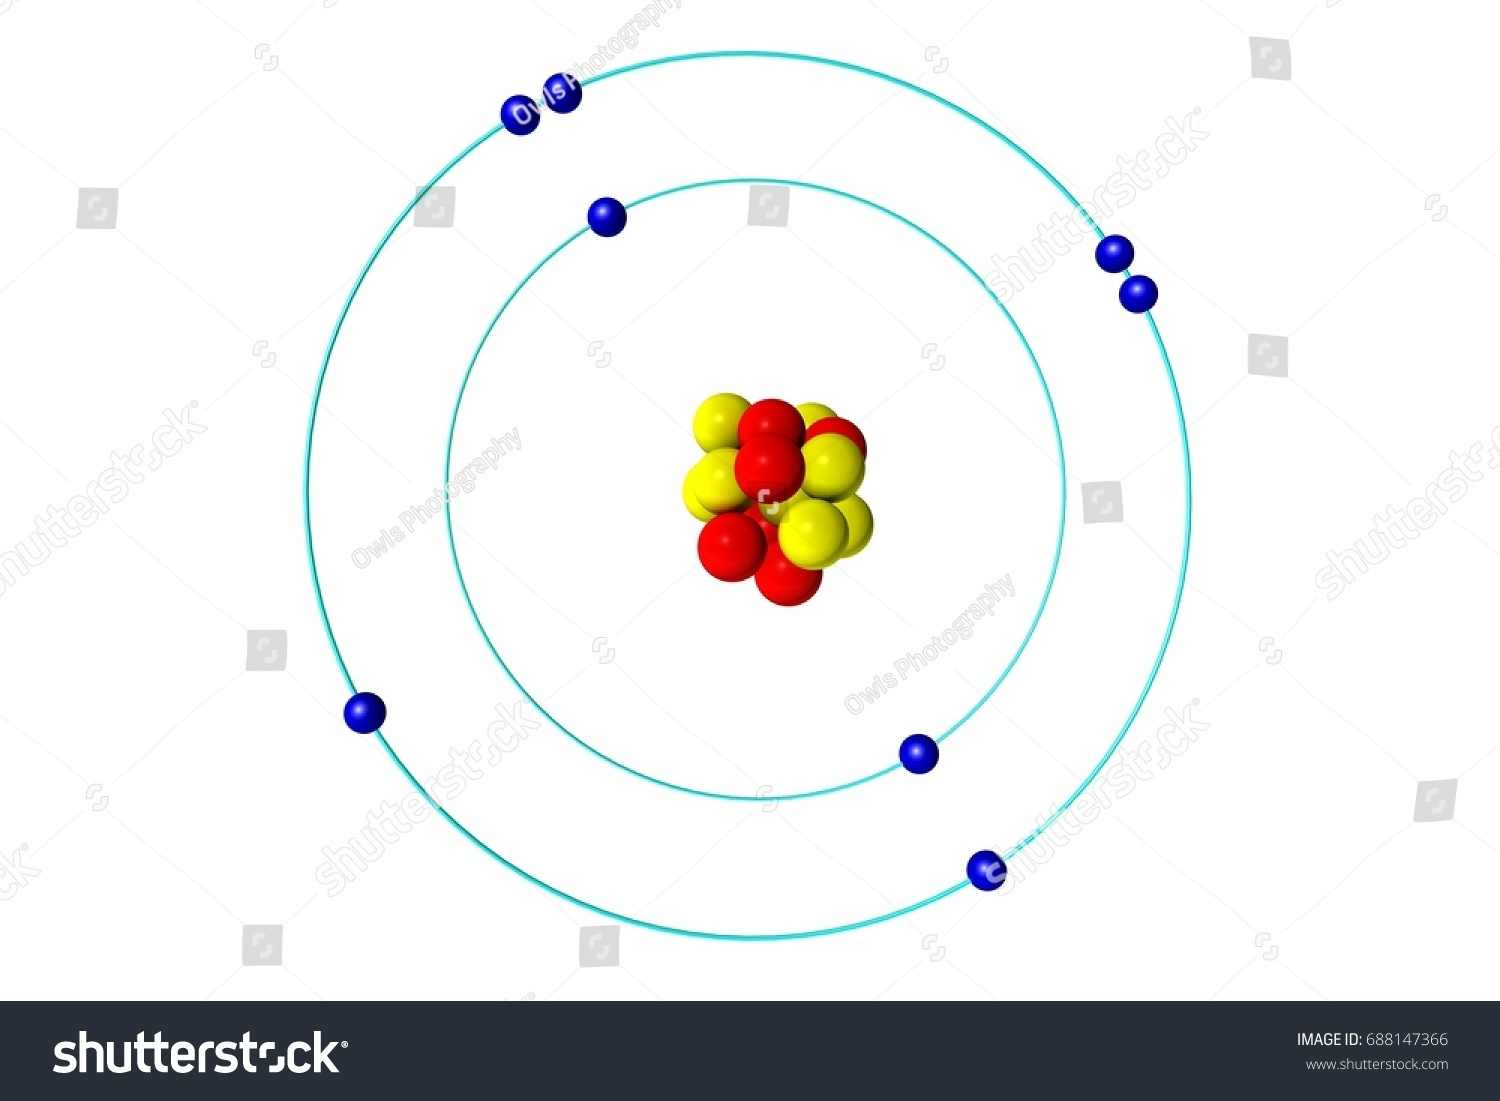 Oxygen atom proton neutron electron 3d stock illustration oxygen atom with proton neutron and electron 3d bohr model illustration pooptronica Image collections